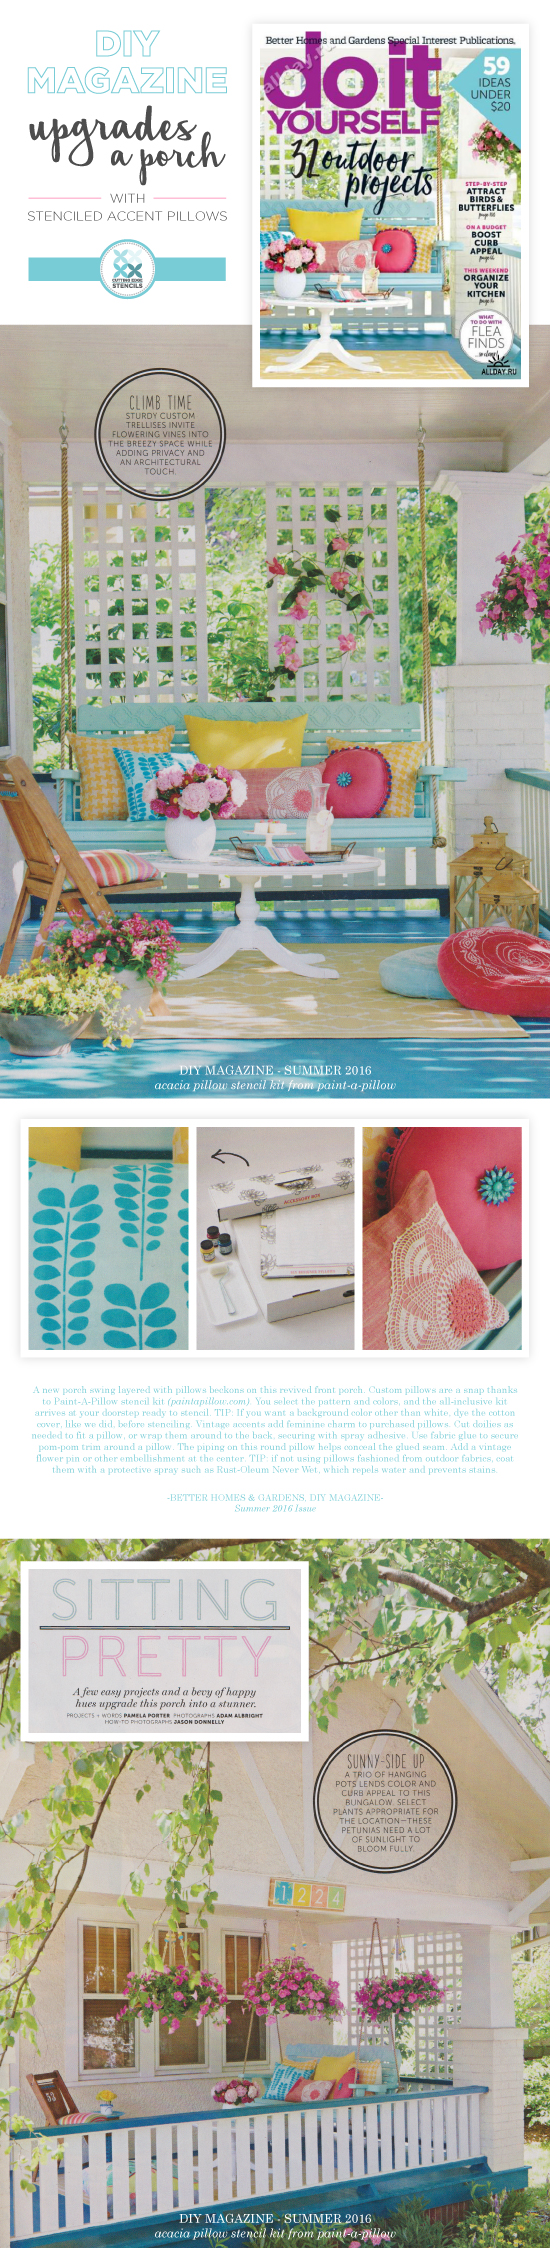 Cutting Edge Stencils is featured on the cover of the Summer 2016 issue of Do It Yourself Magazine from BHG. http://www.cuttingedgestencils.com/acacia-stencil-paint-a-pillow-kit.html